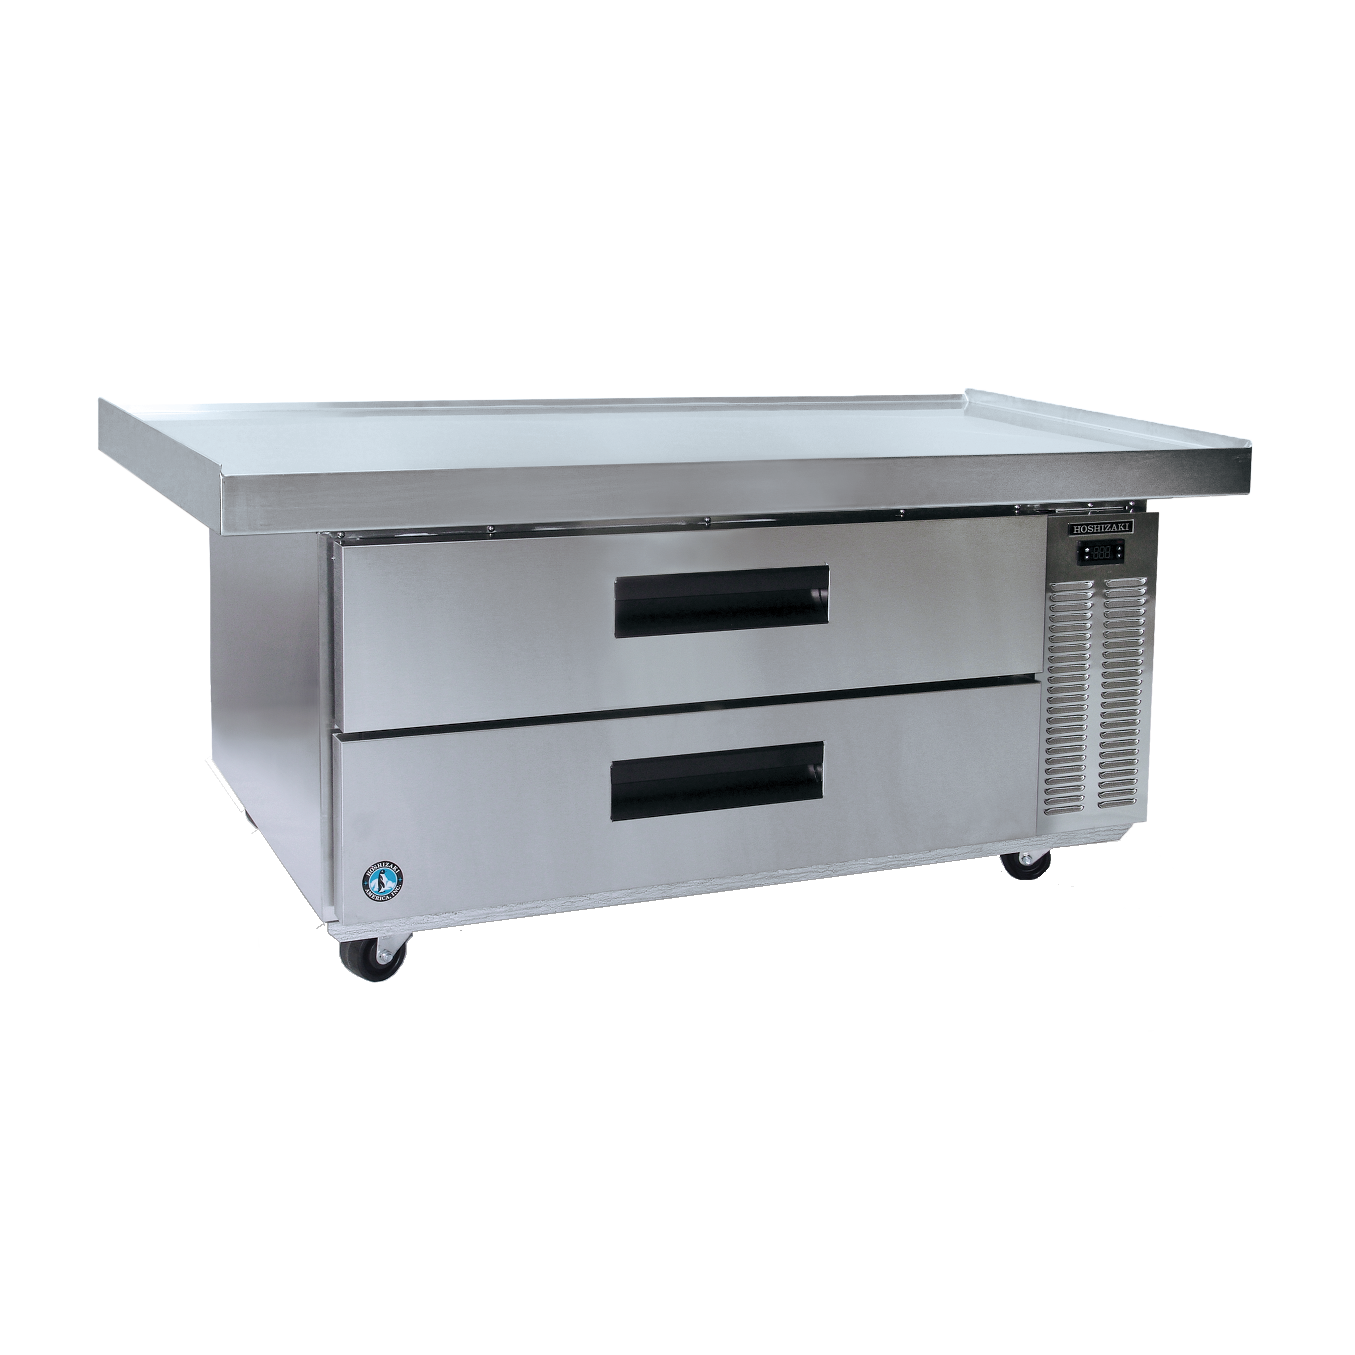 "superior-equipment-supply - Hoshizaki - Hoshizaki Stainless Steel 60.5"" Wide Equipment Stand With Refrigerator"